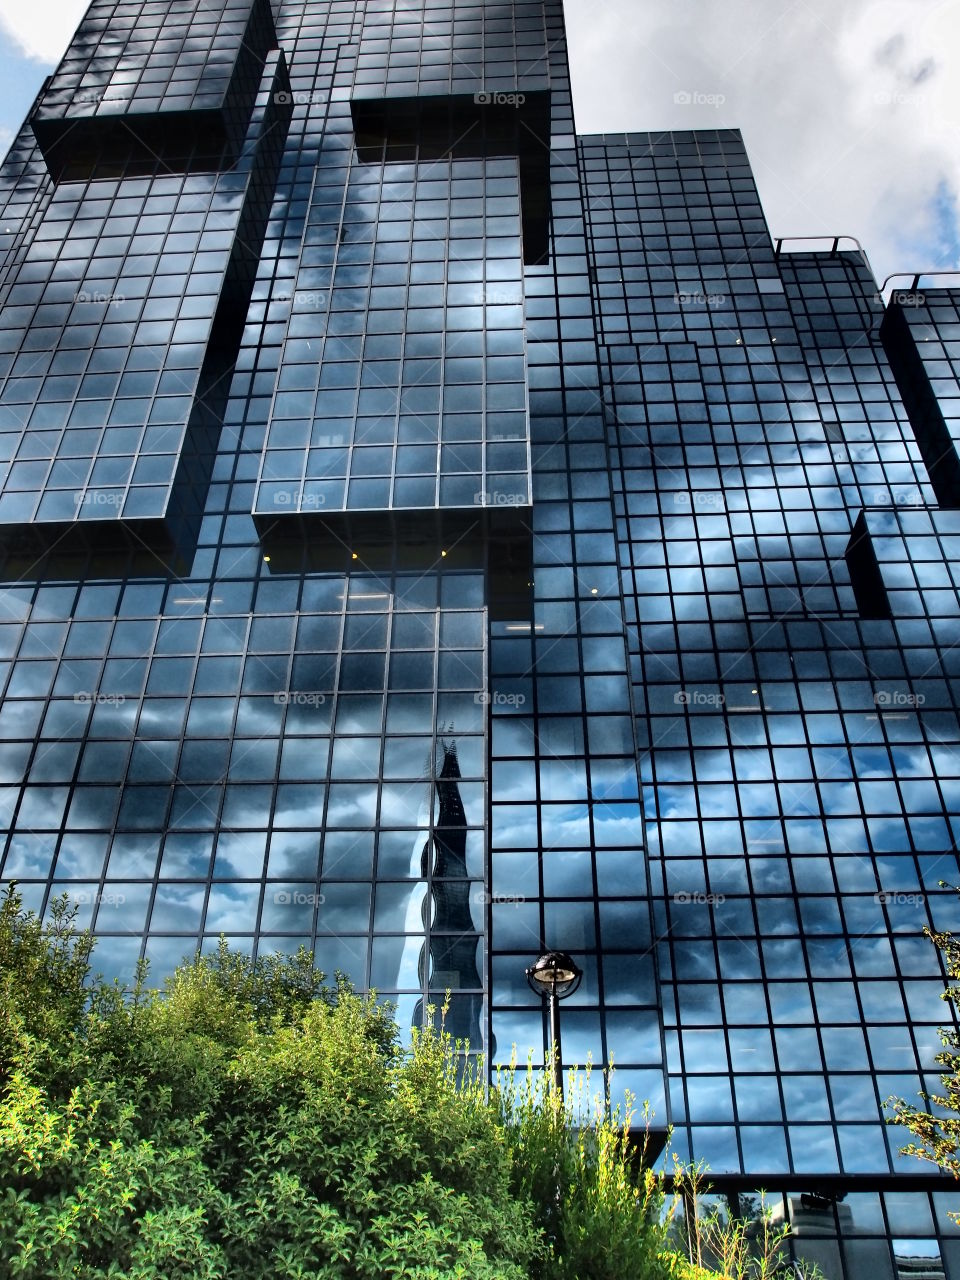 Amazing modules on a glass building reflecting the clouds in the sky in London exhibiting creative modern architecture.